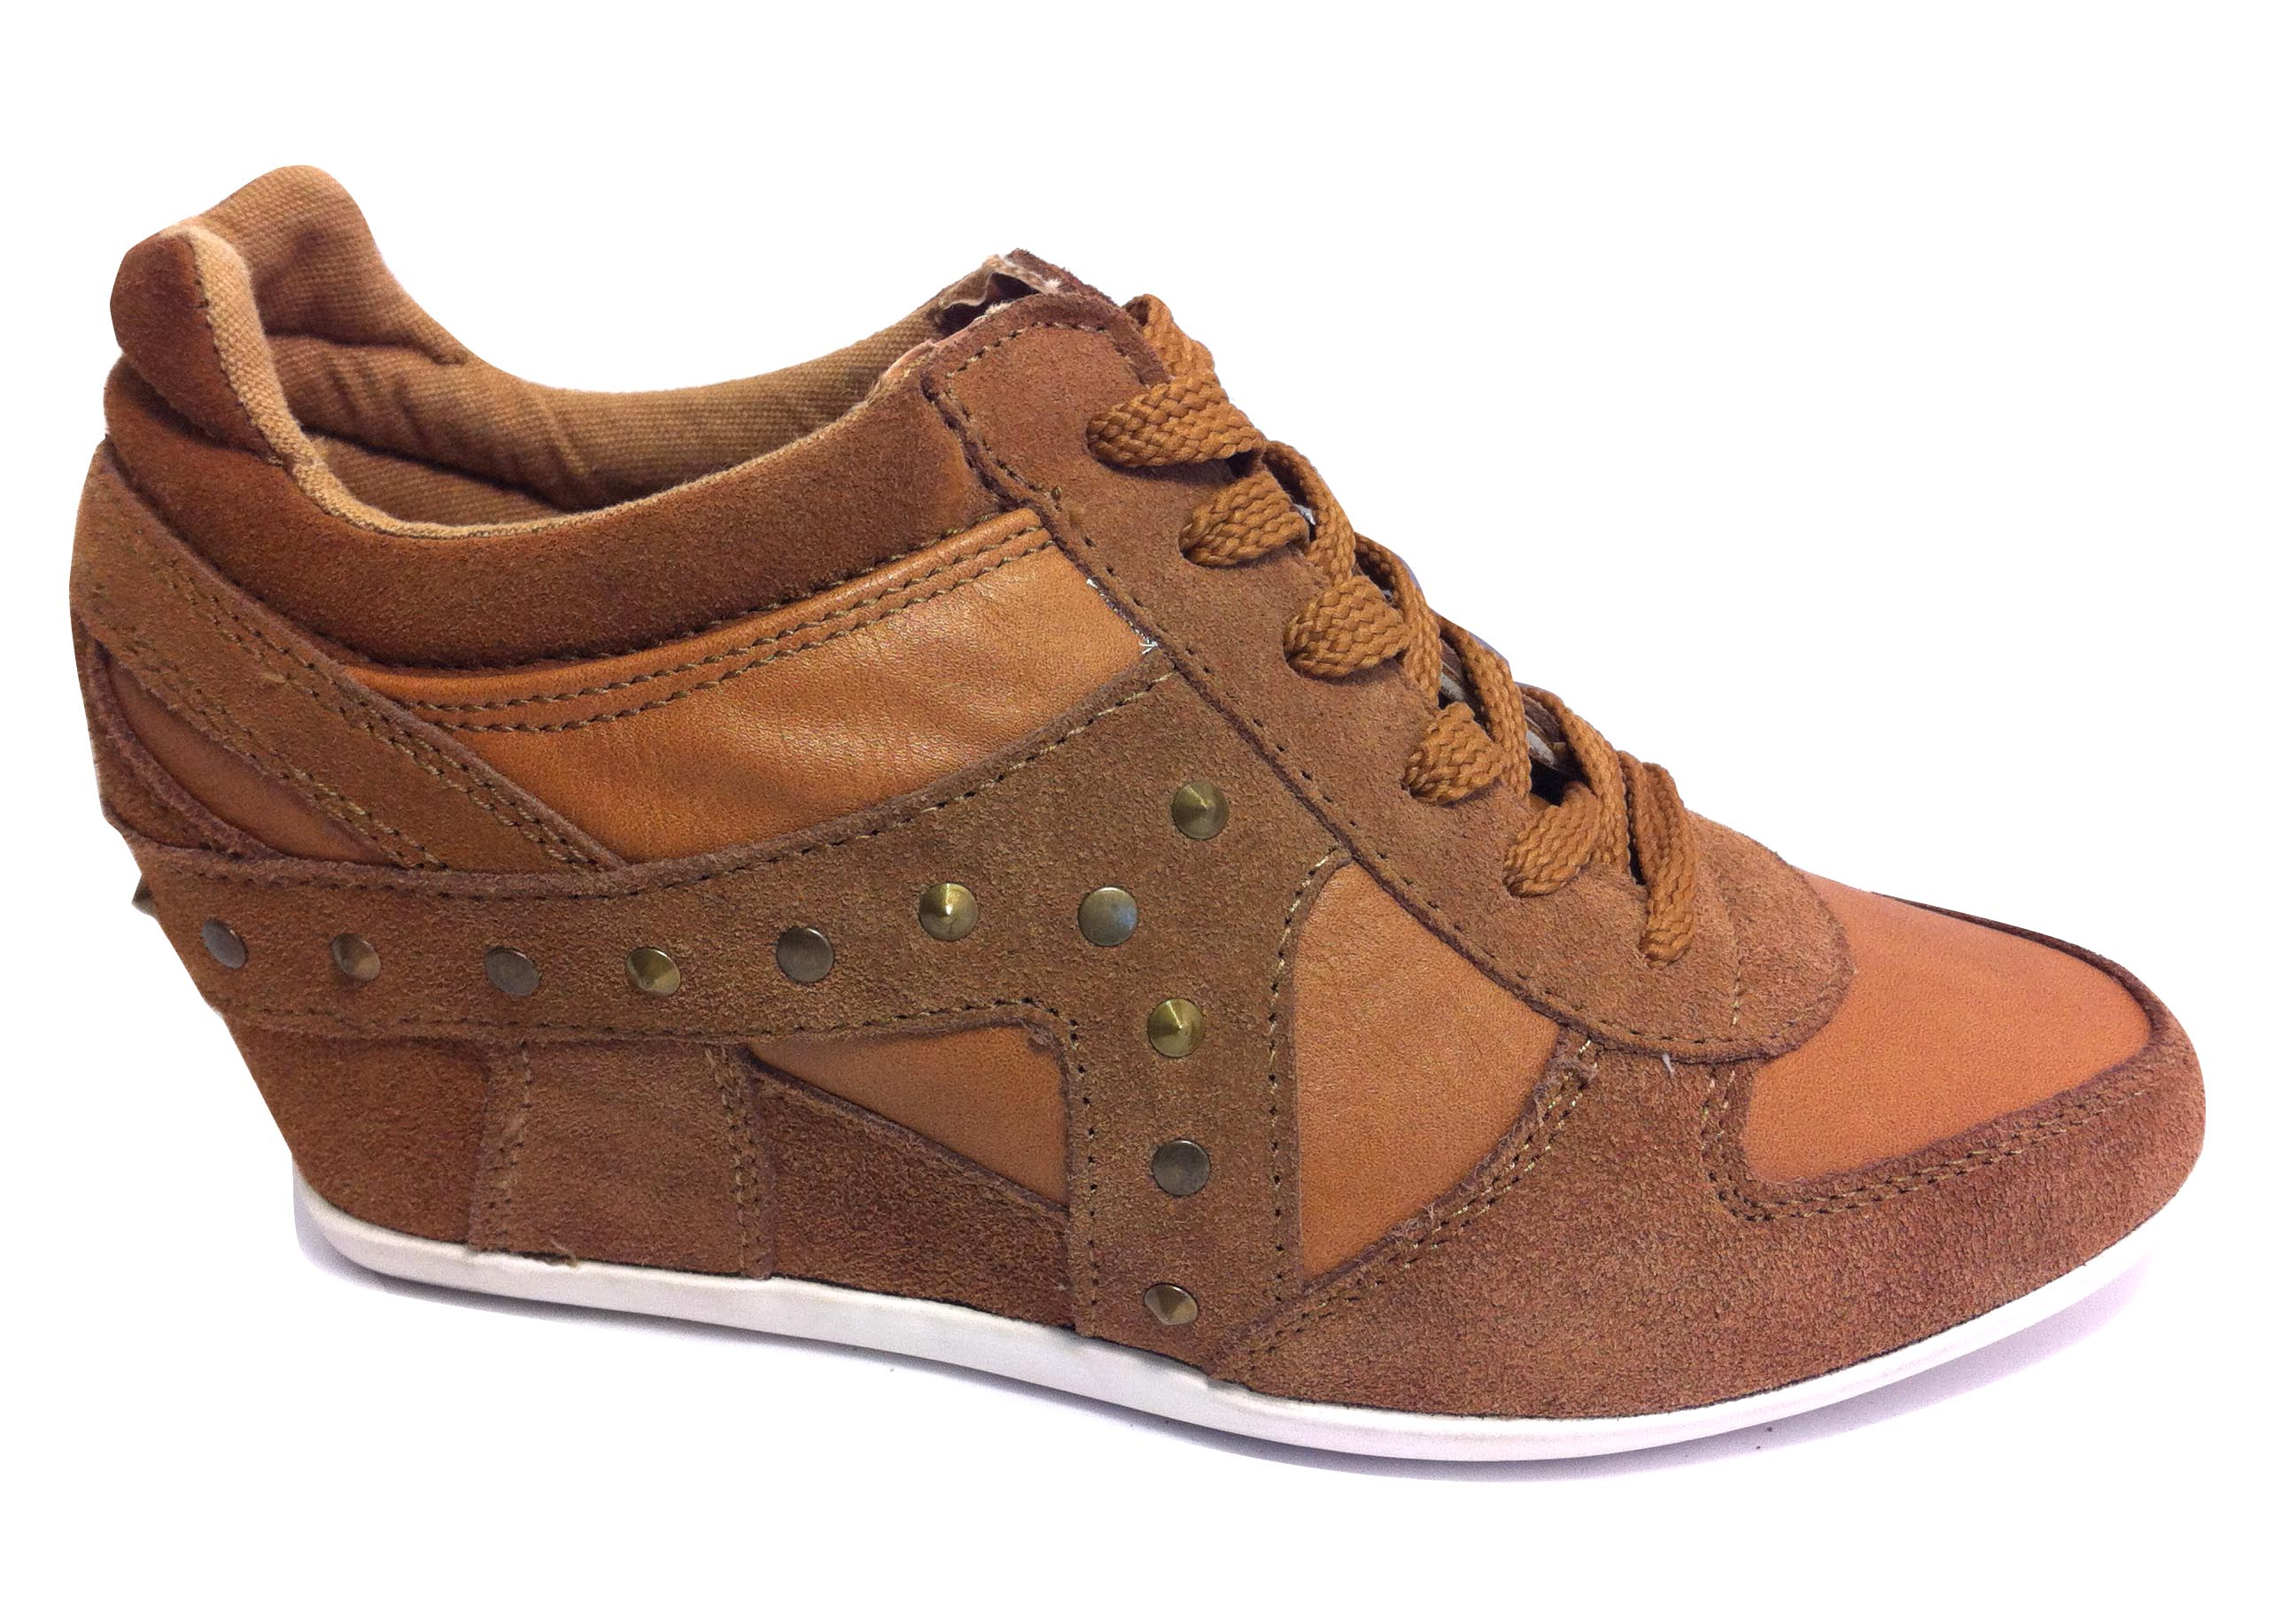 FWB13415_BROWN_крос.платформа_36-40